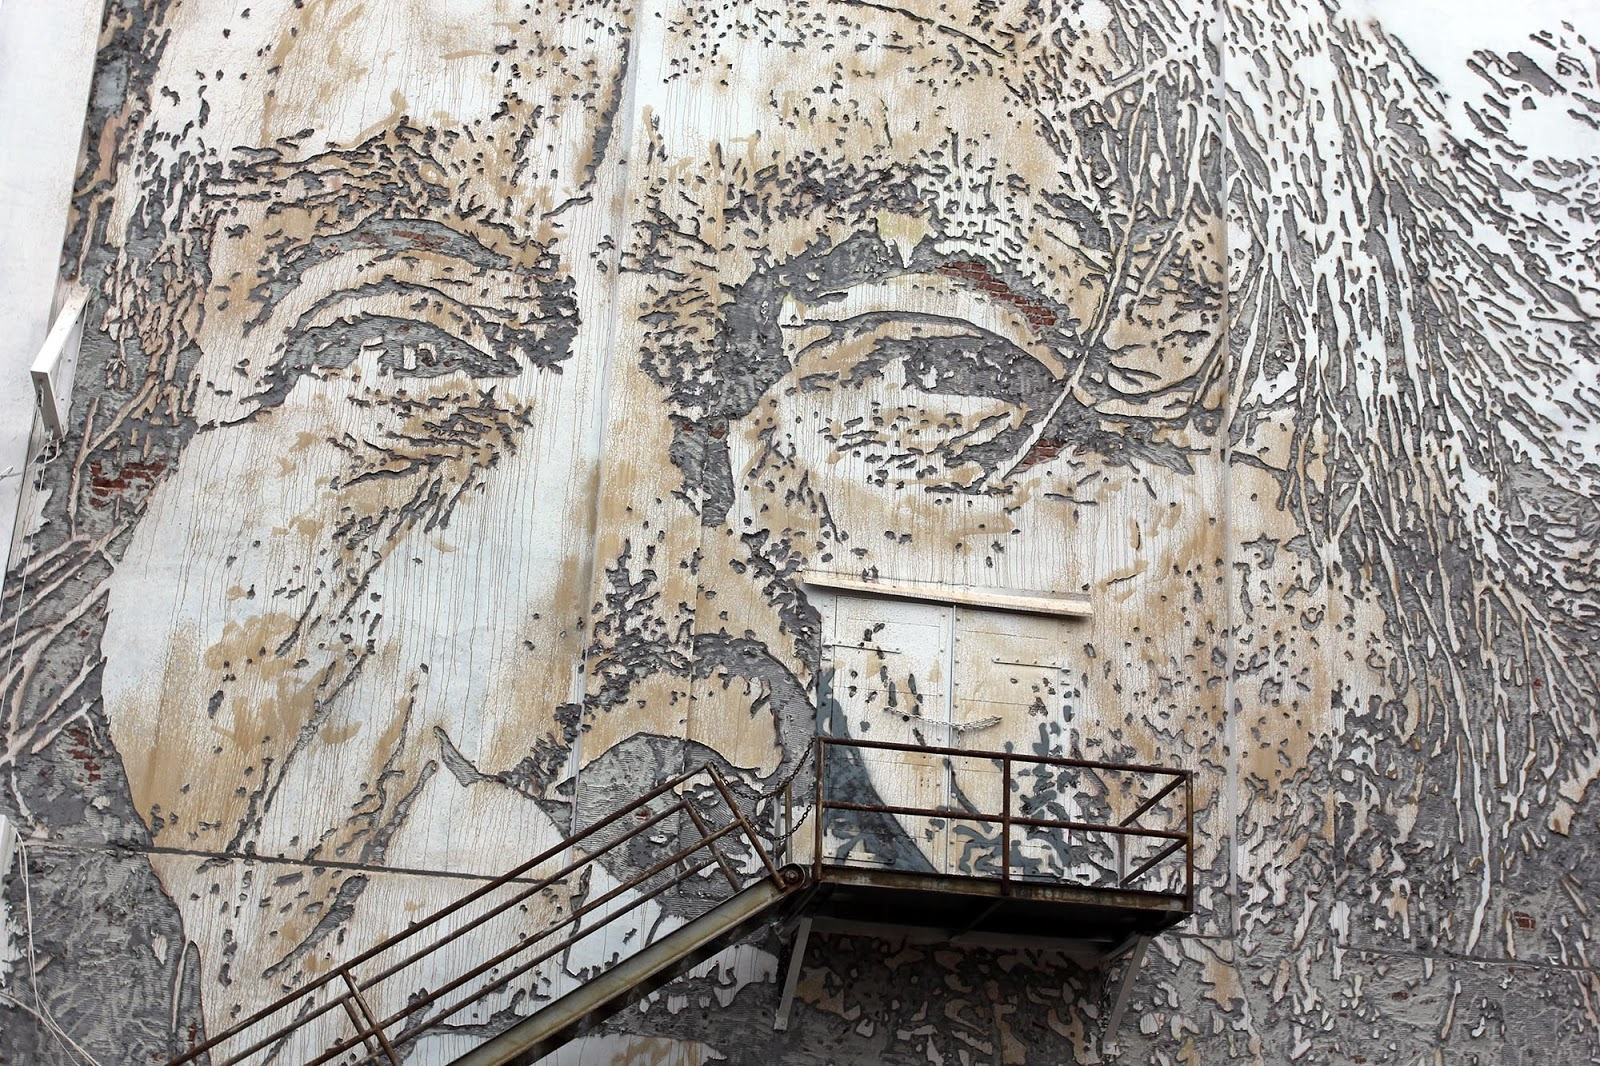 unexpected 15 vhils unveils a new mural in fort smith arkansas first photographs made from native american cherokee continue reading for more detailed images on this gorgeous piece of work and then check back with